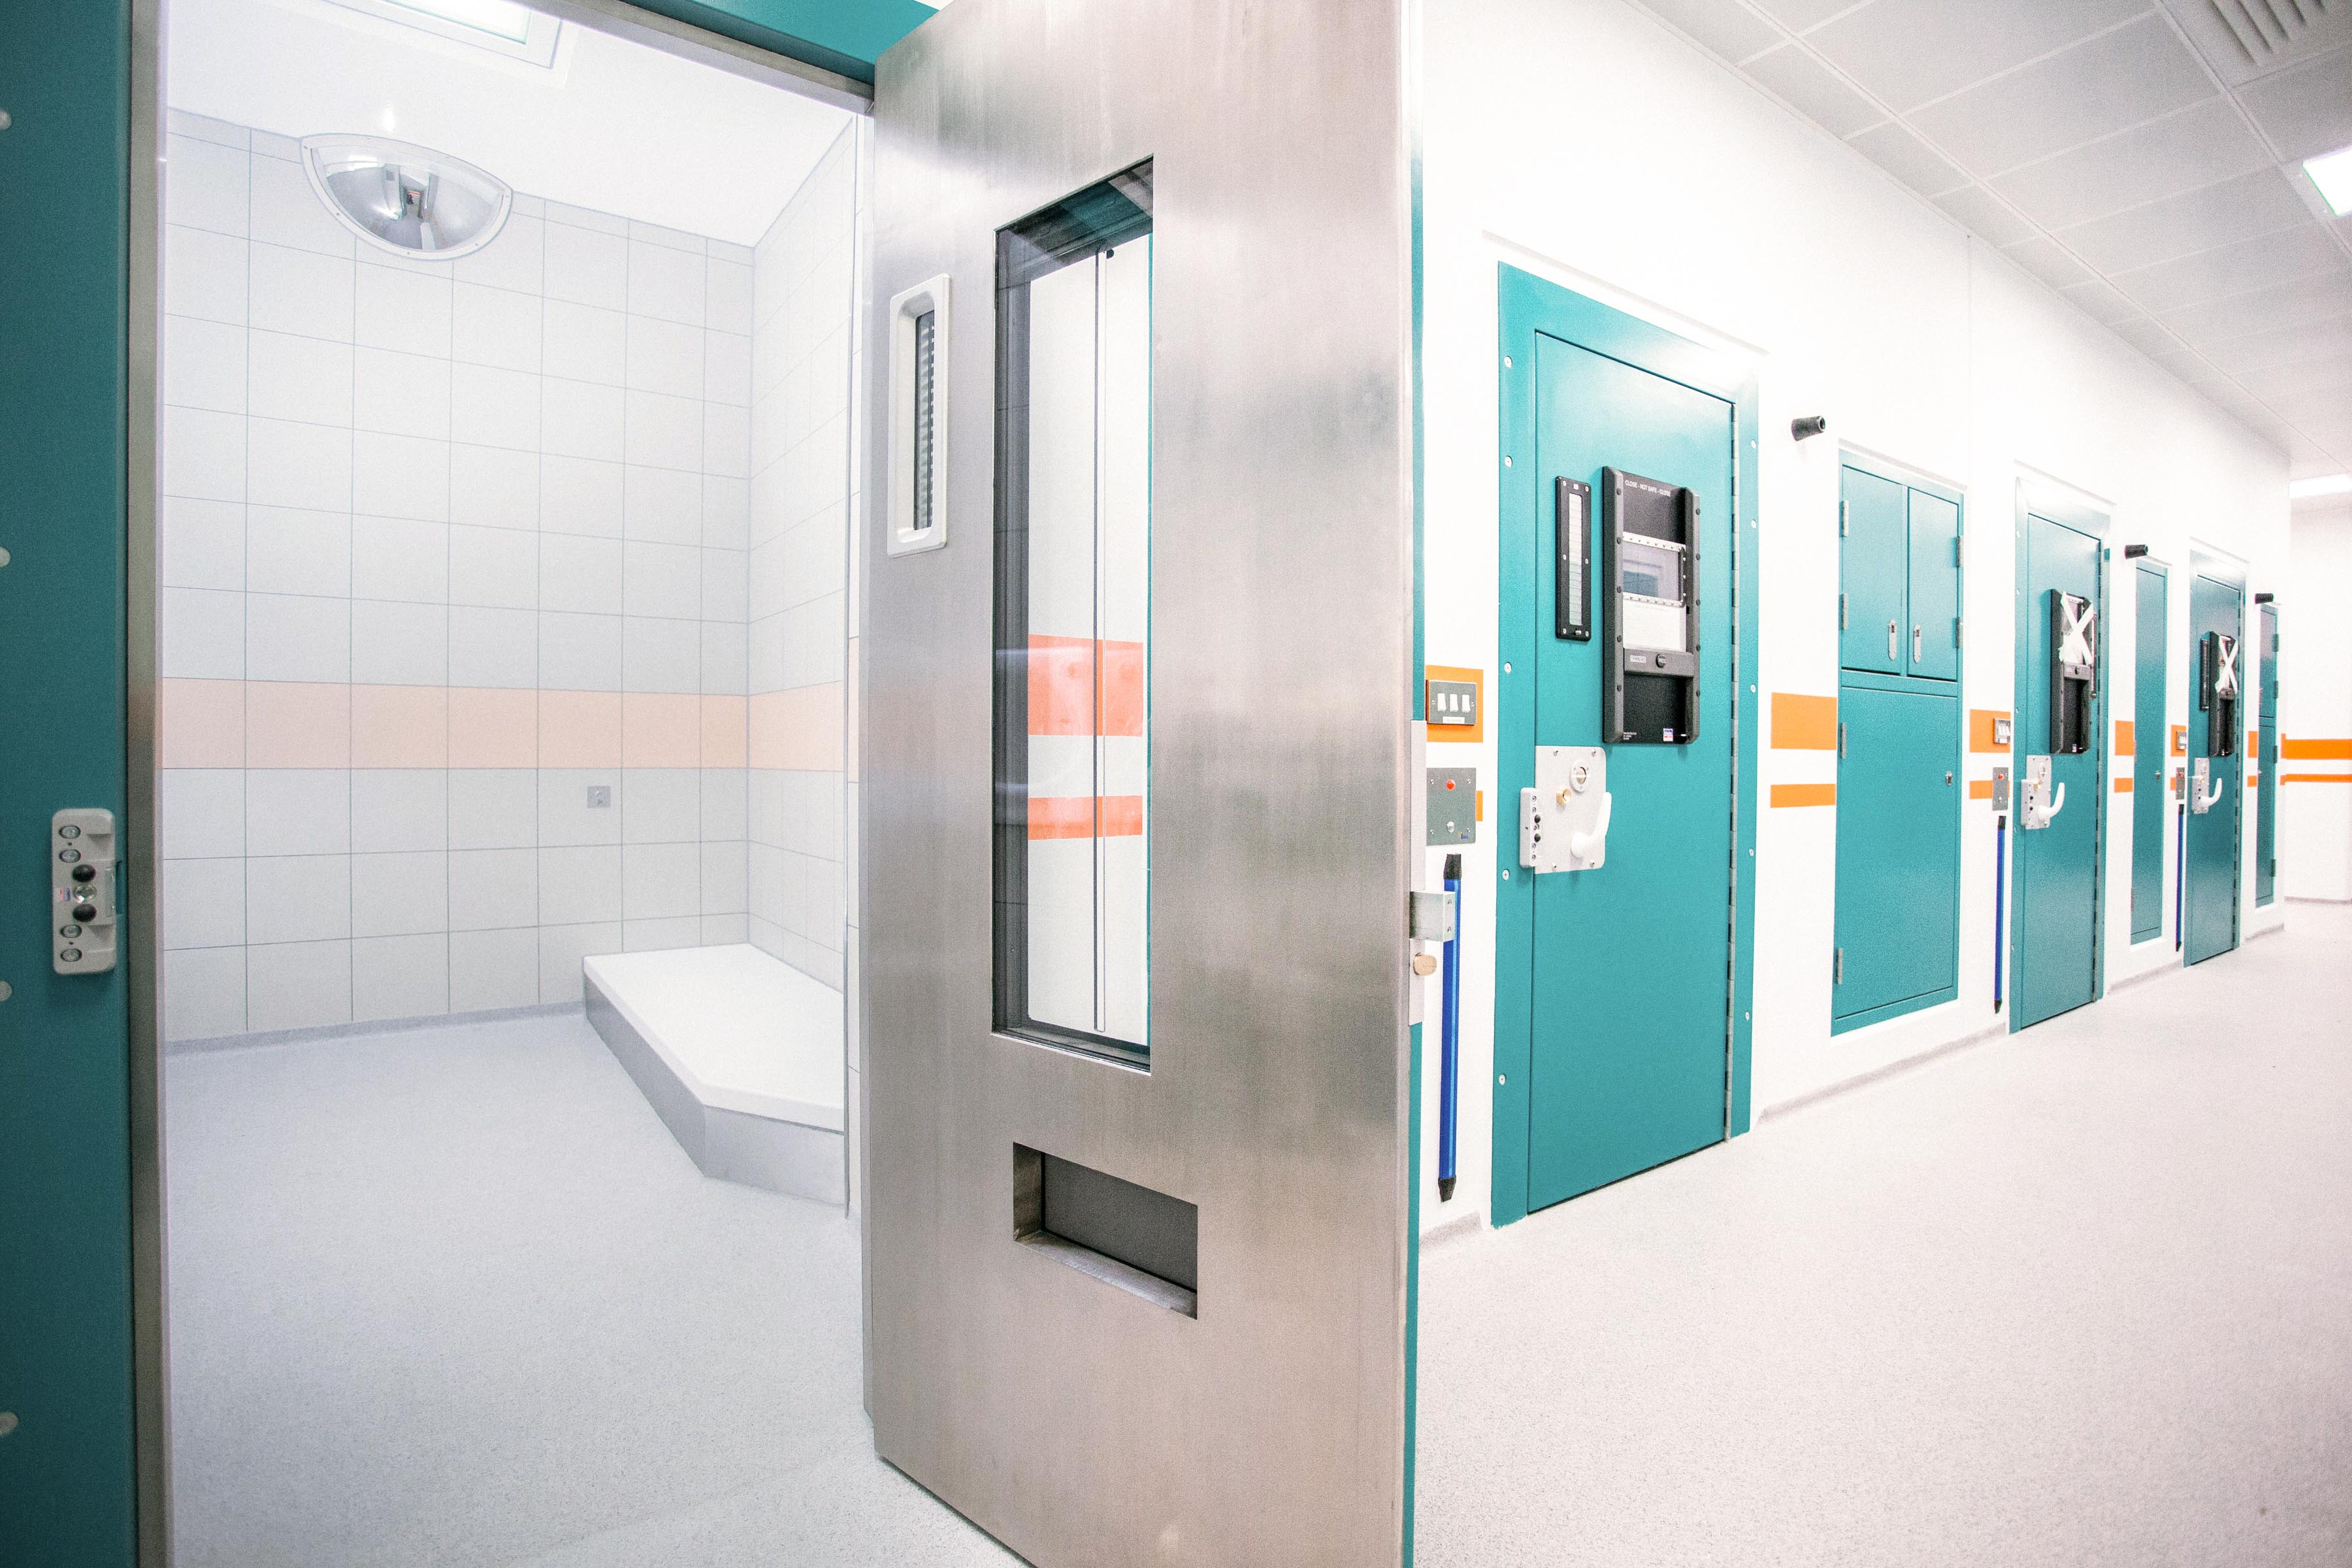 High-tech cameras will save lives in Devon and Cornwall Police custody cells